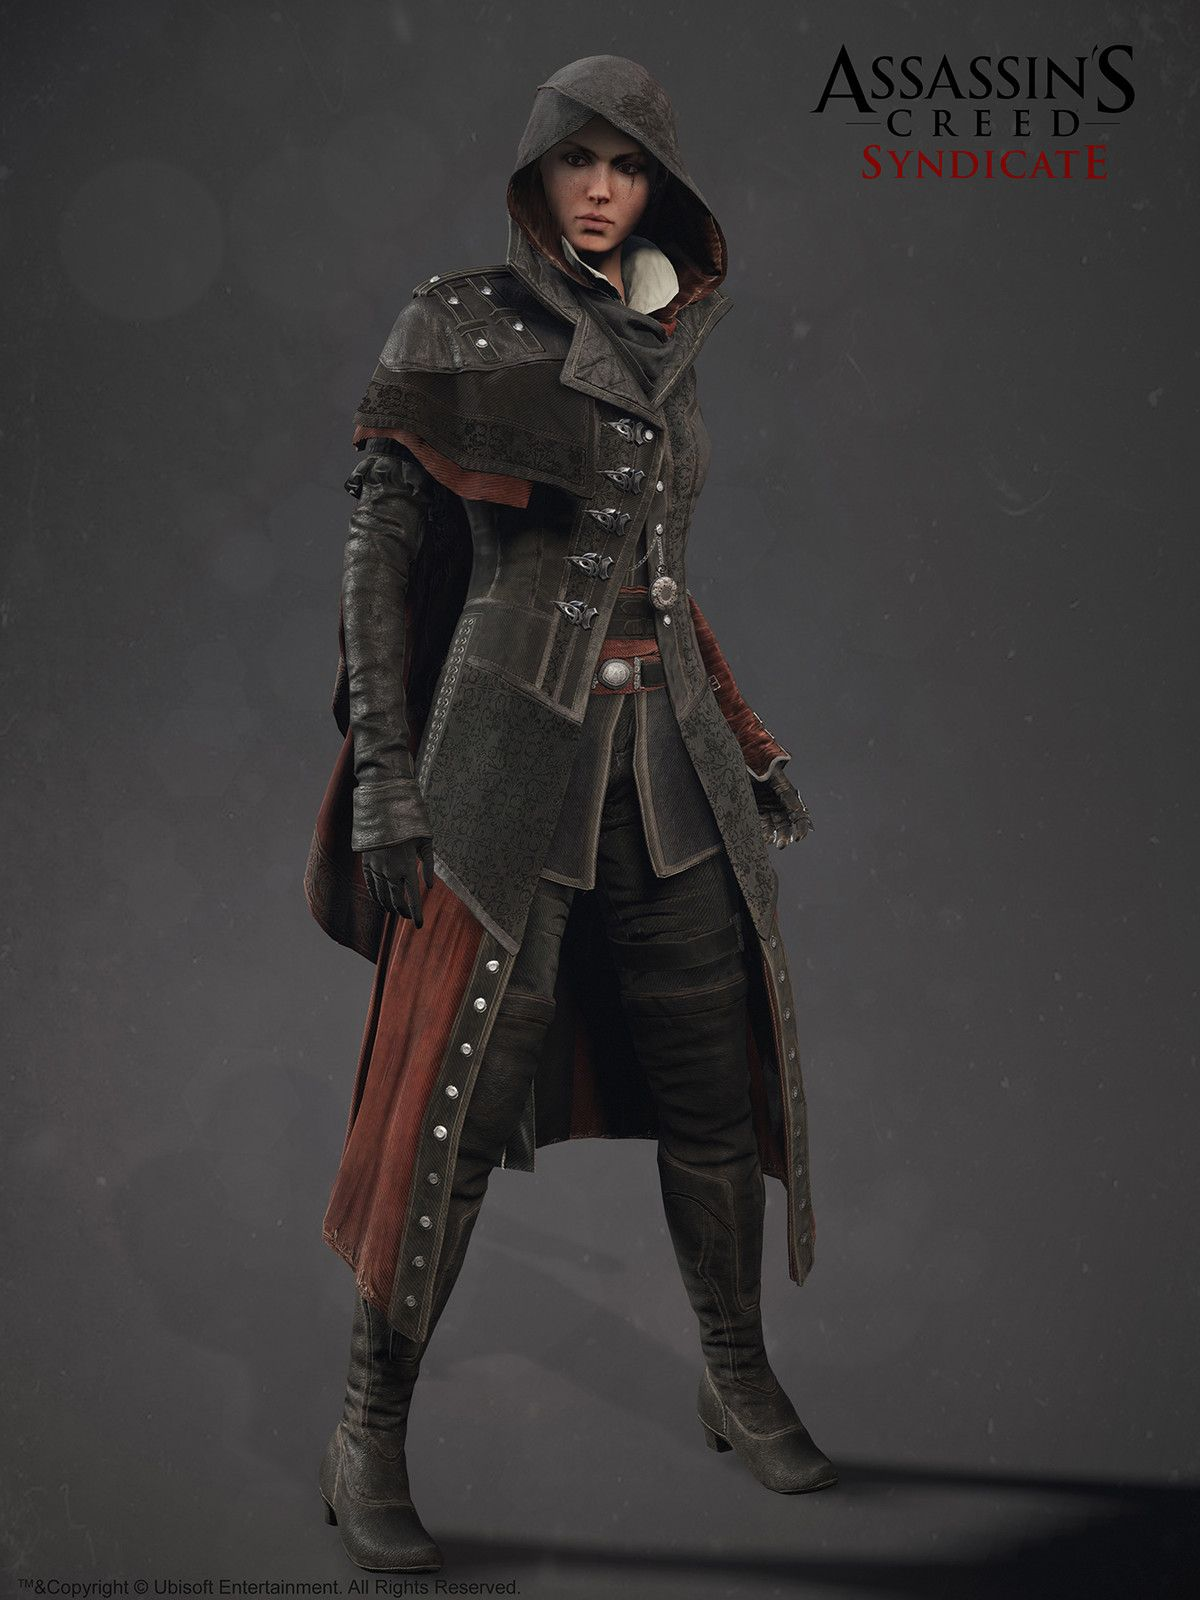 Assassin S Creed Syndicate Evie Frye Alexis Belley Assassins Creed Syndicate Evie Assassins Creed Outfit Assassins Creed Cosplay